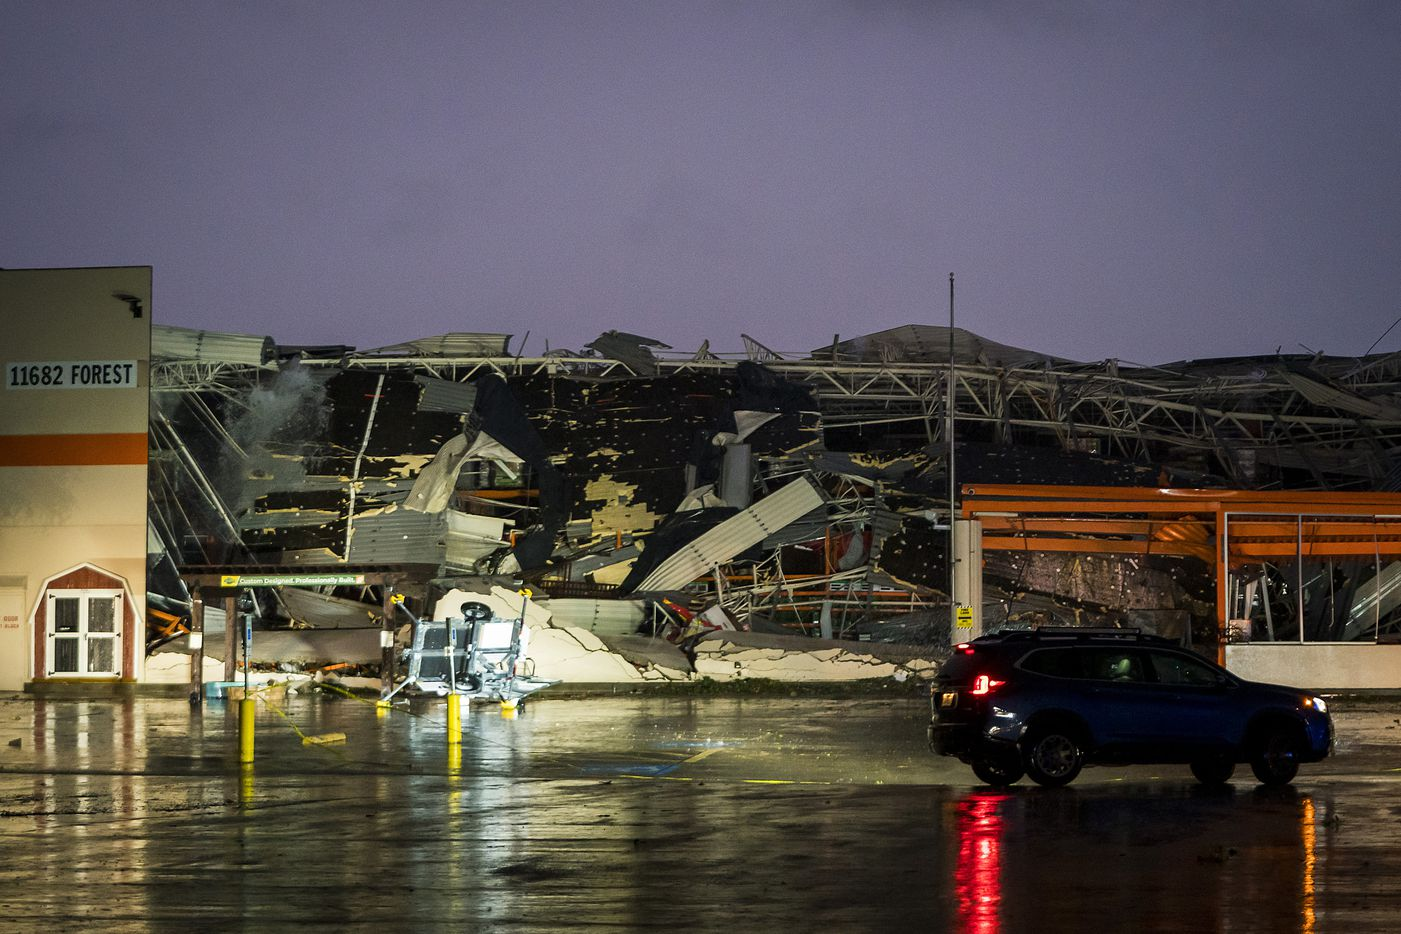 Tornado damage to the Home Depot store near the intersection of Forest and North Central Expressway in the early morning hours on Monday, Oct. 21, 2019, in Dallas.